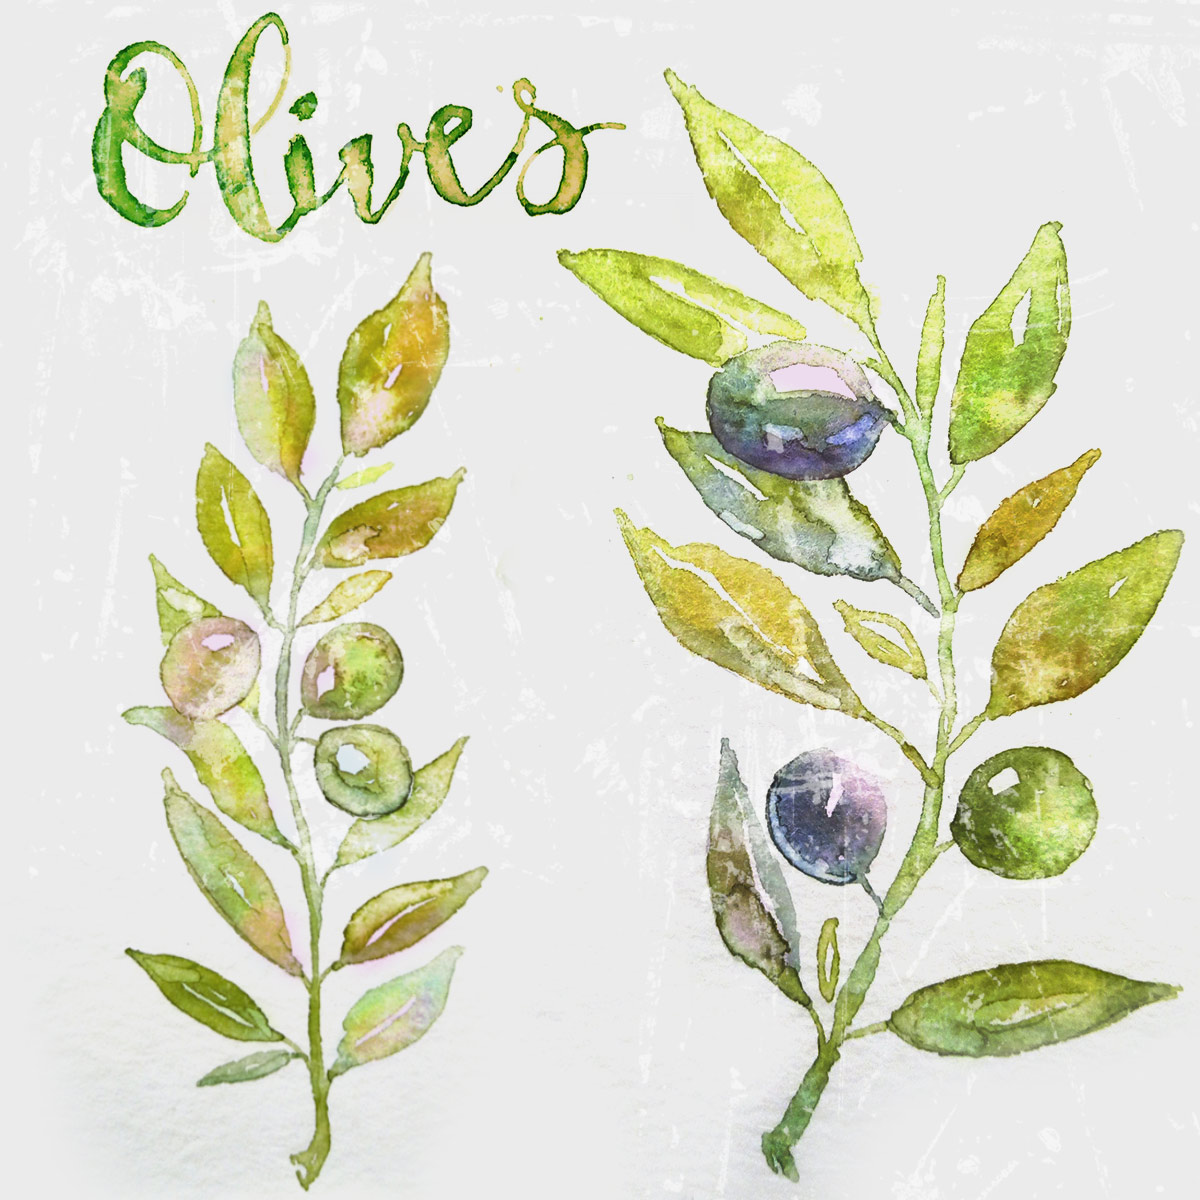 Olive Watercolor image